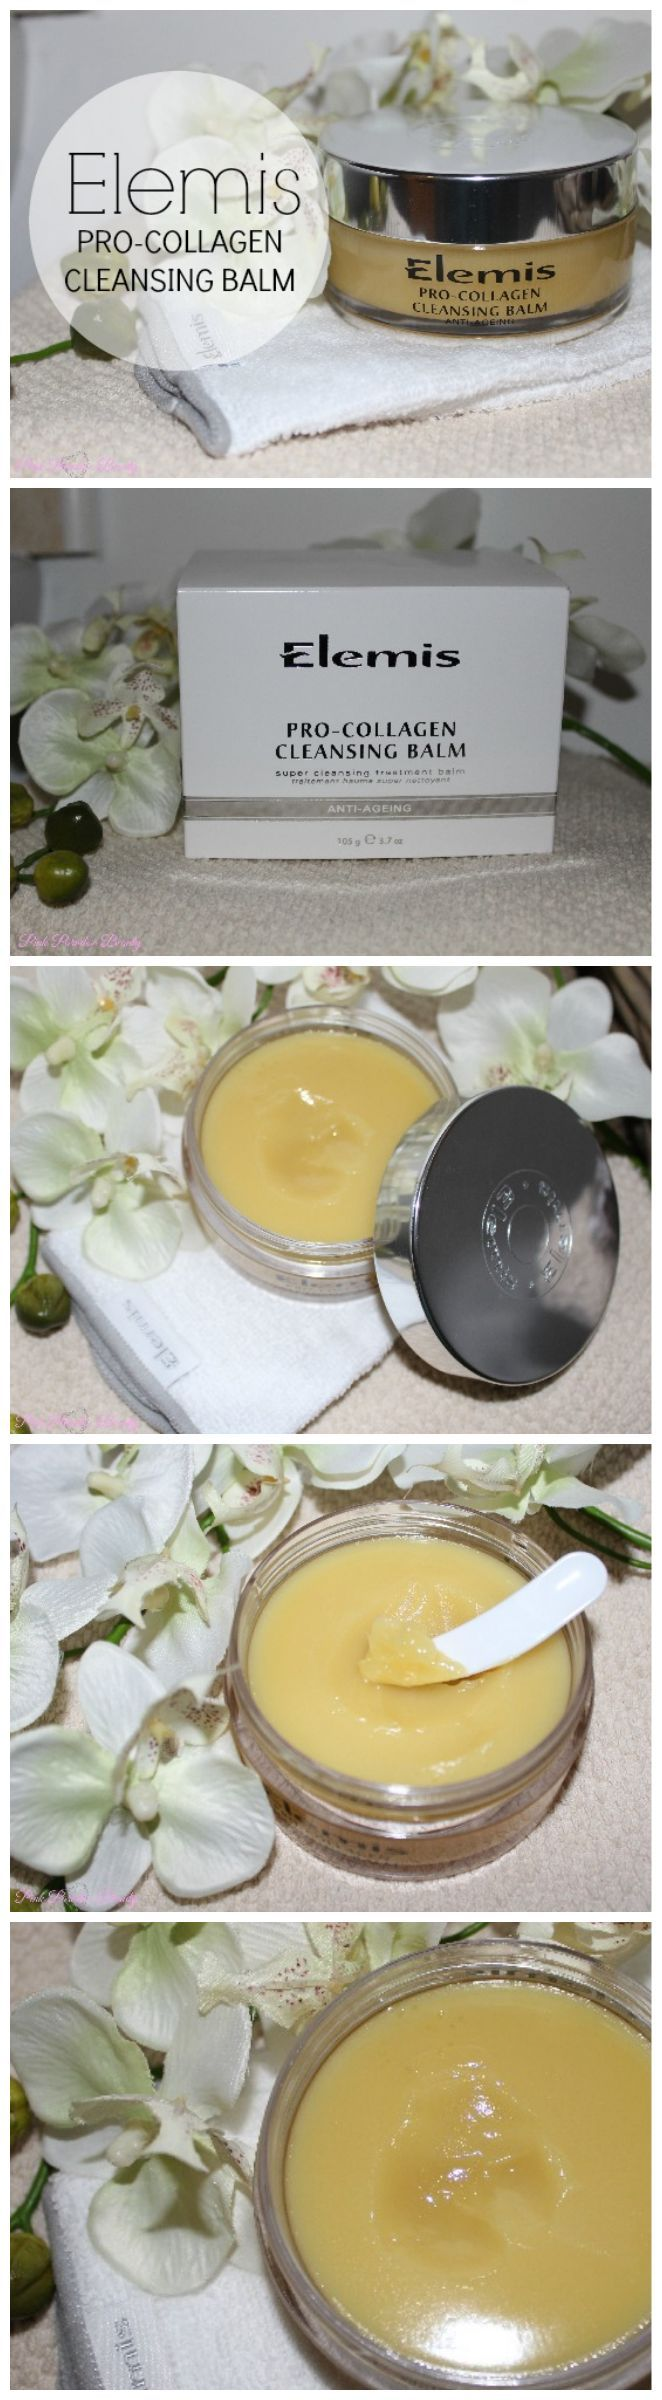 Elemis Pro-Collagen Cleansing Balm, Review and Photos http://pinkparadisebeauty.blogspot.co.uk/2015/03/elemis-pro-collagen-cleansing-balm.html